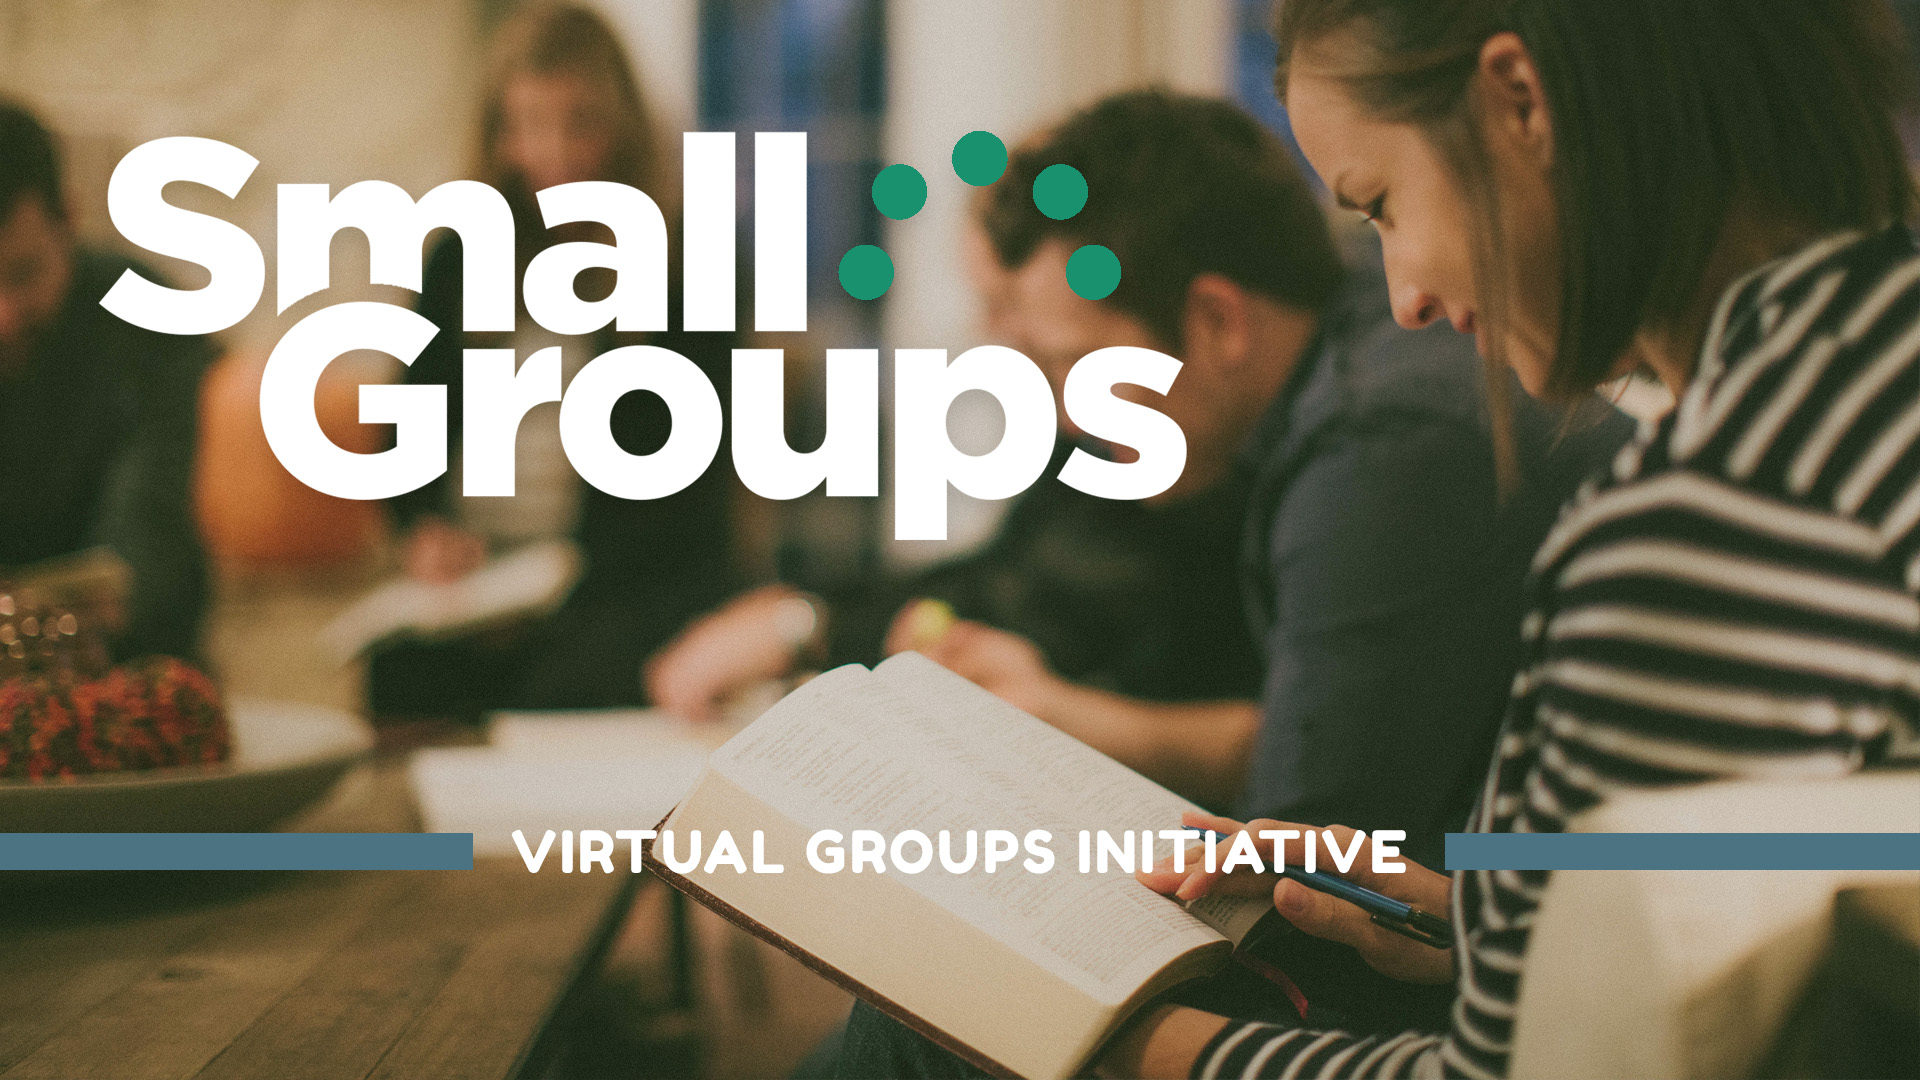 jpg-smallgroups-virtualgroupsinitiative